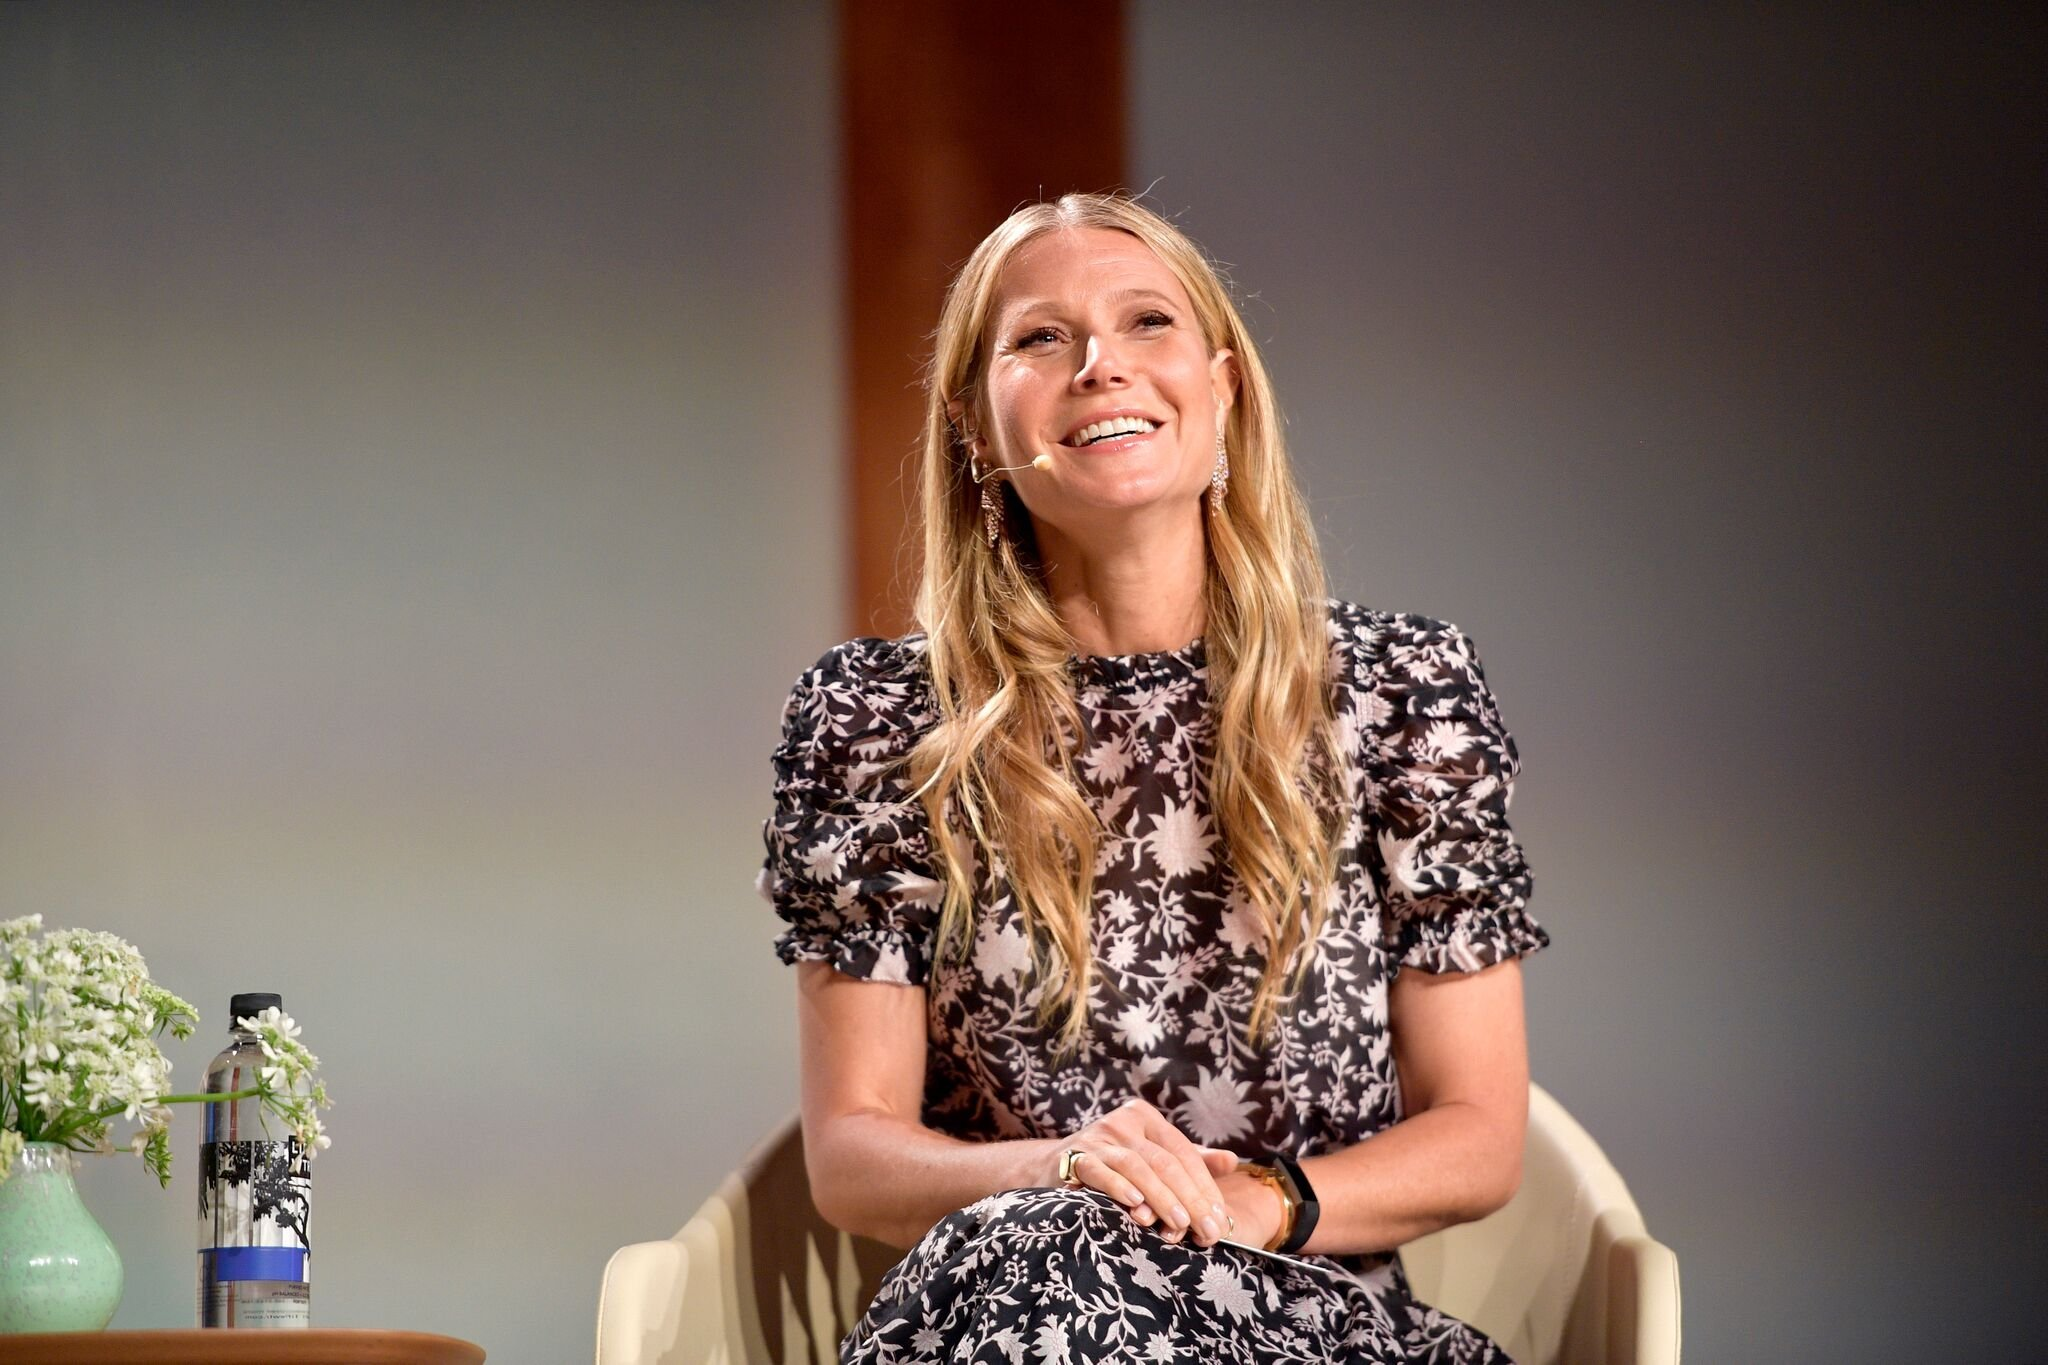 Gwyneth Paltrow speaks onstage at the In goop Health Summit at 3Labs | Getty Images